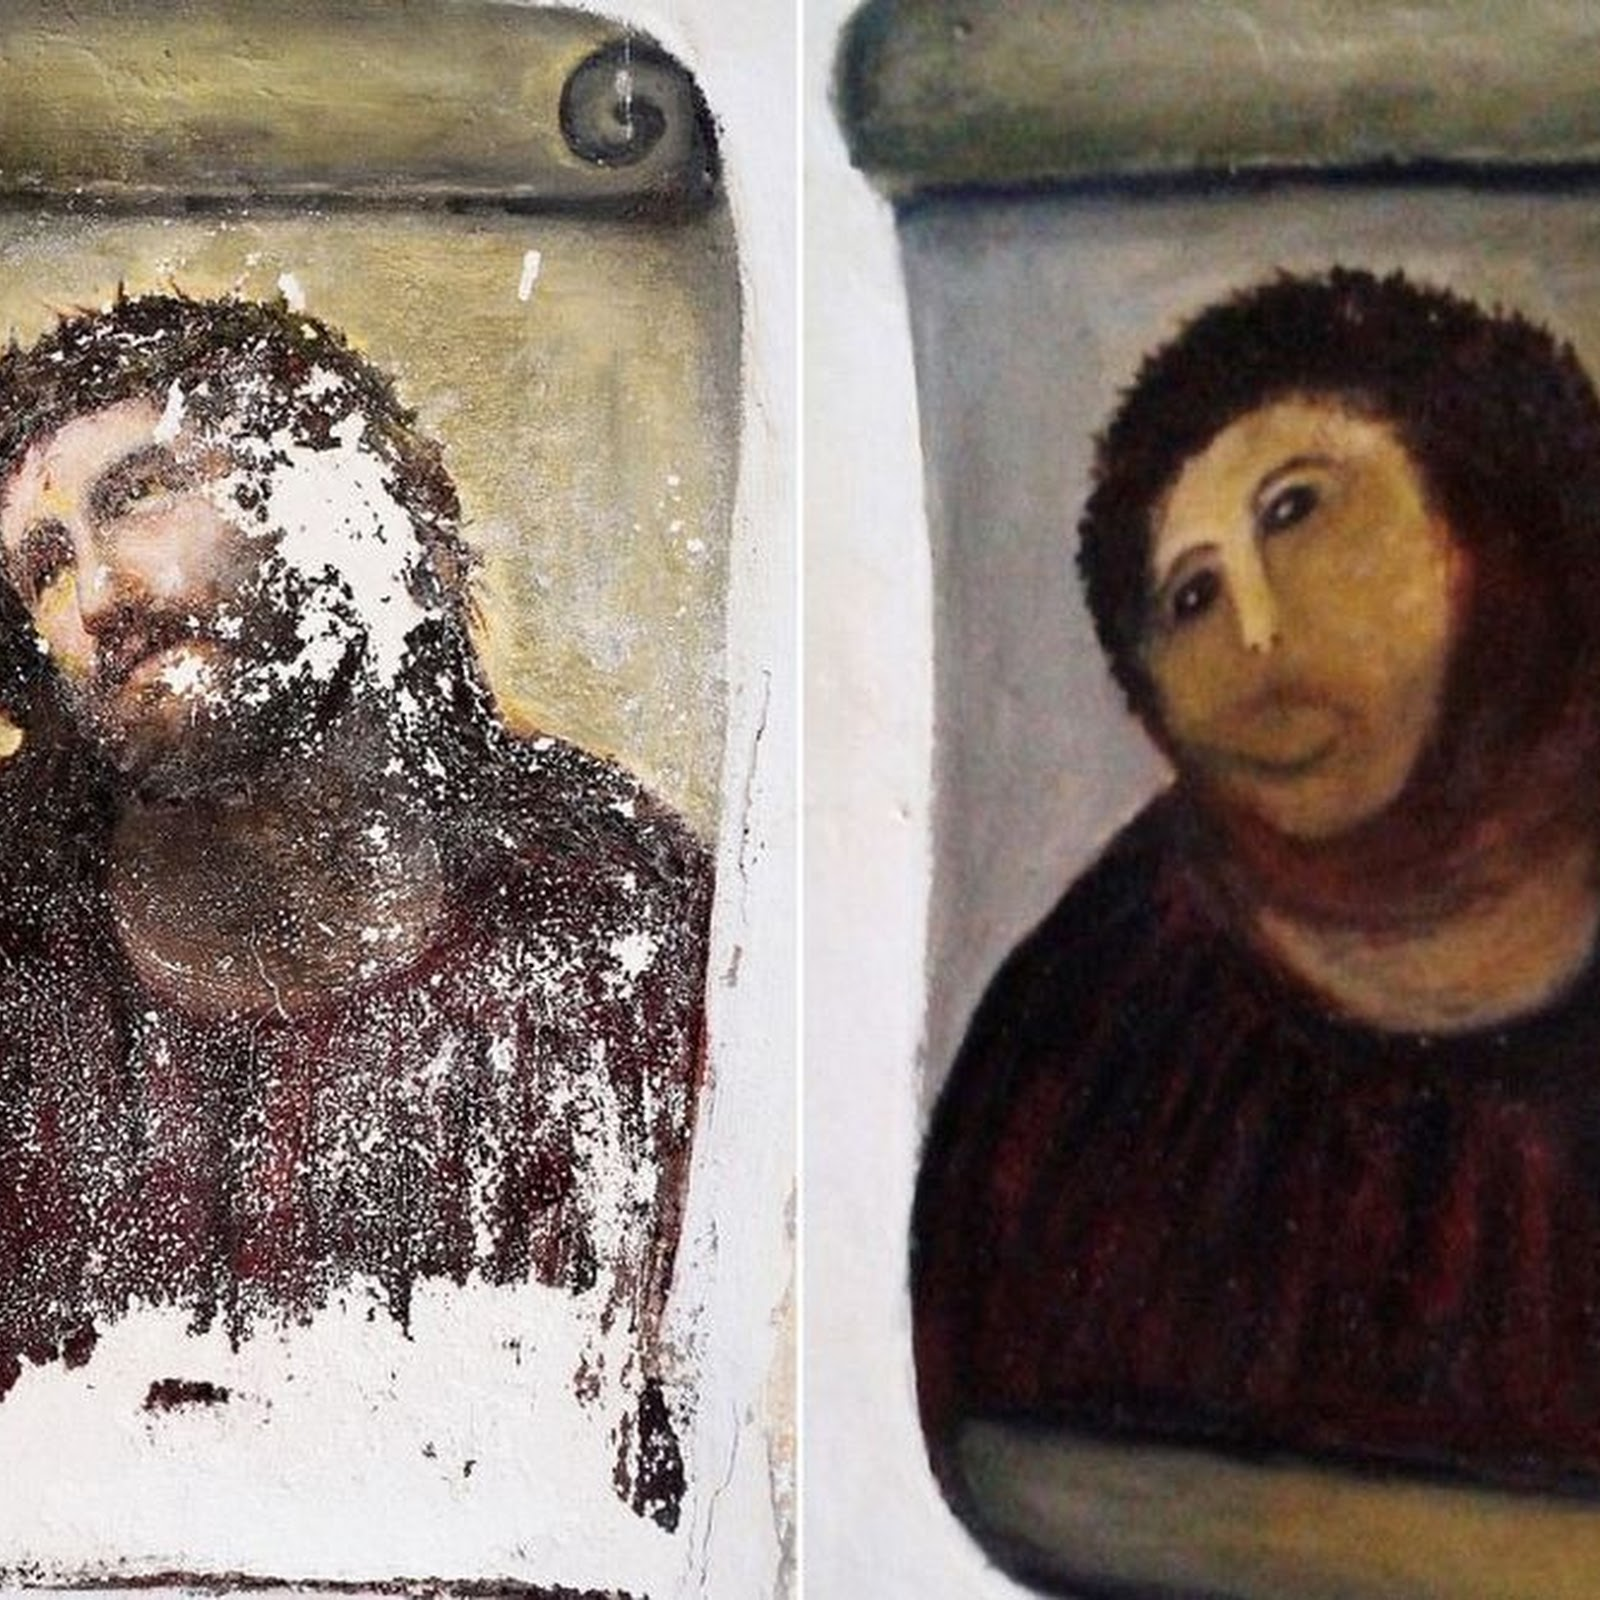 Ecce Homo: The Botched Painting That Saved a Town